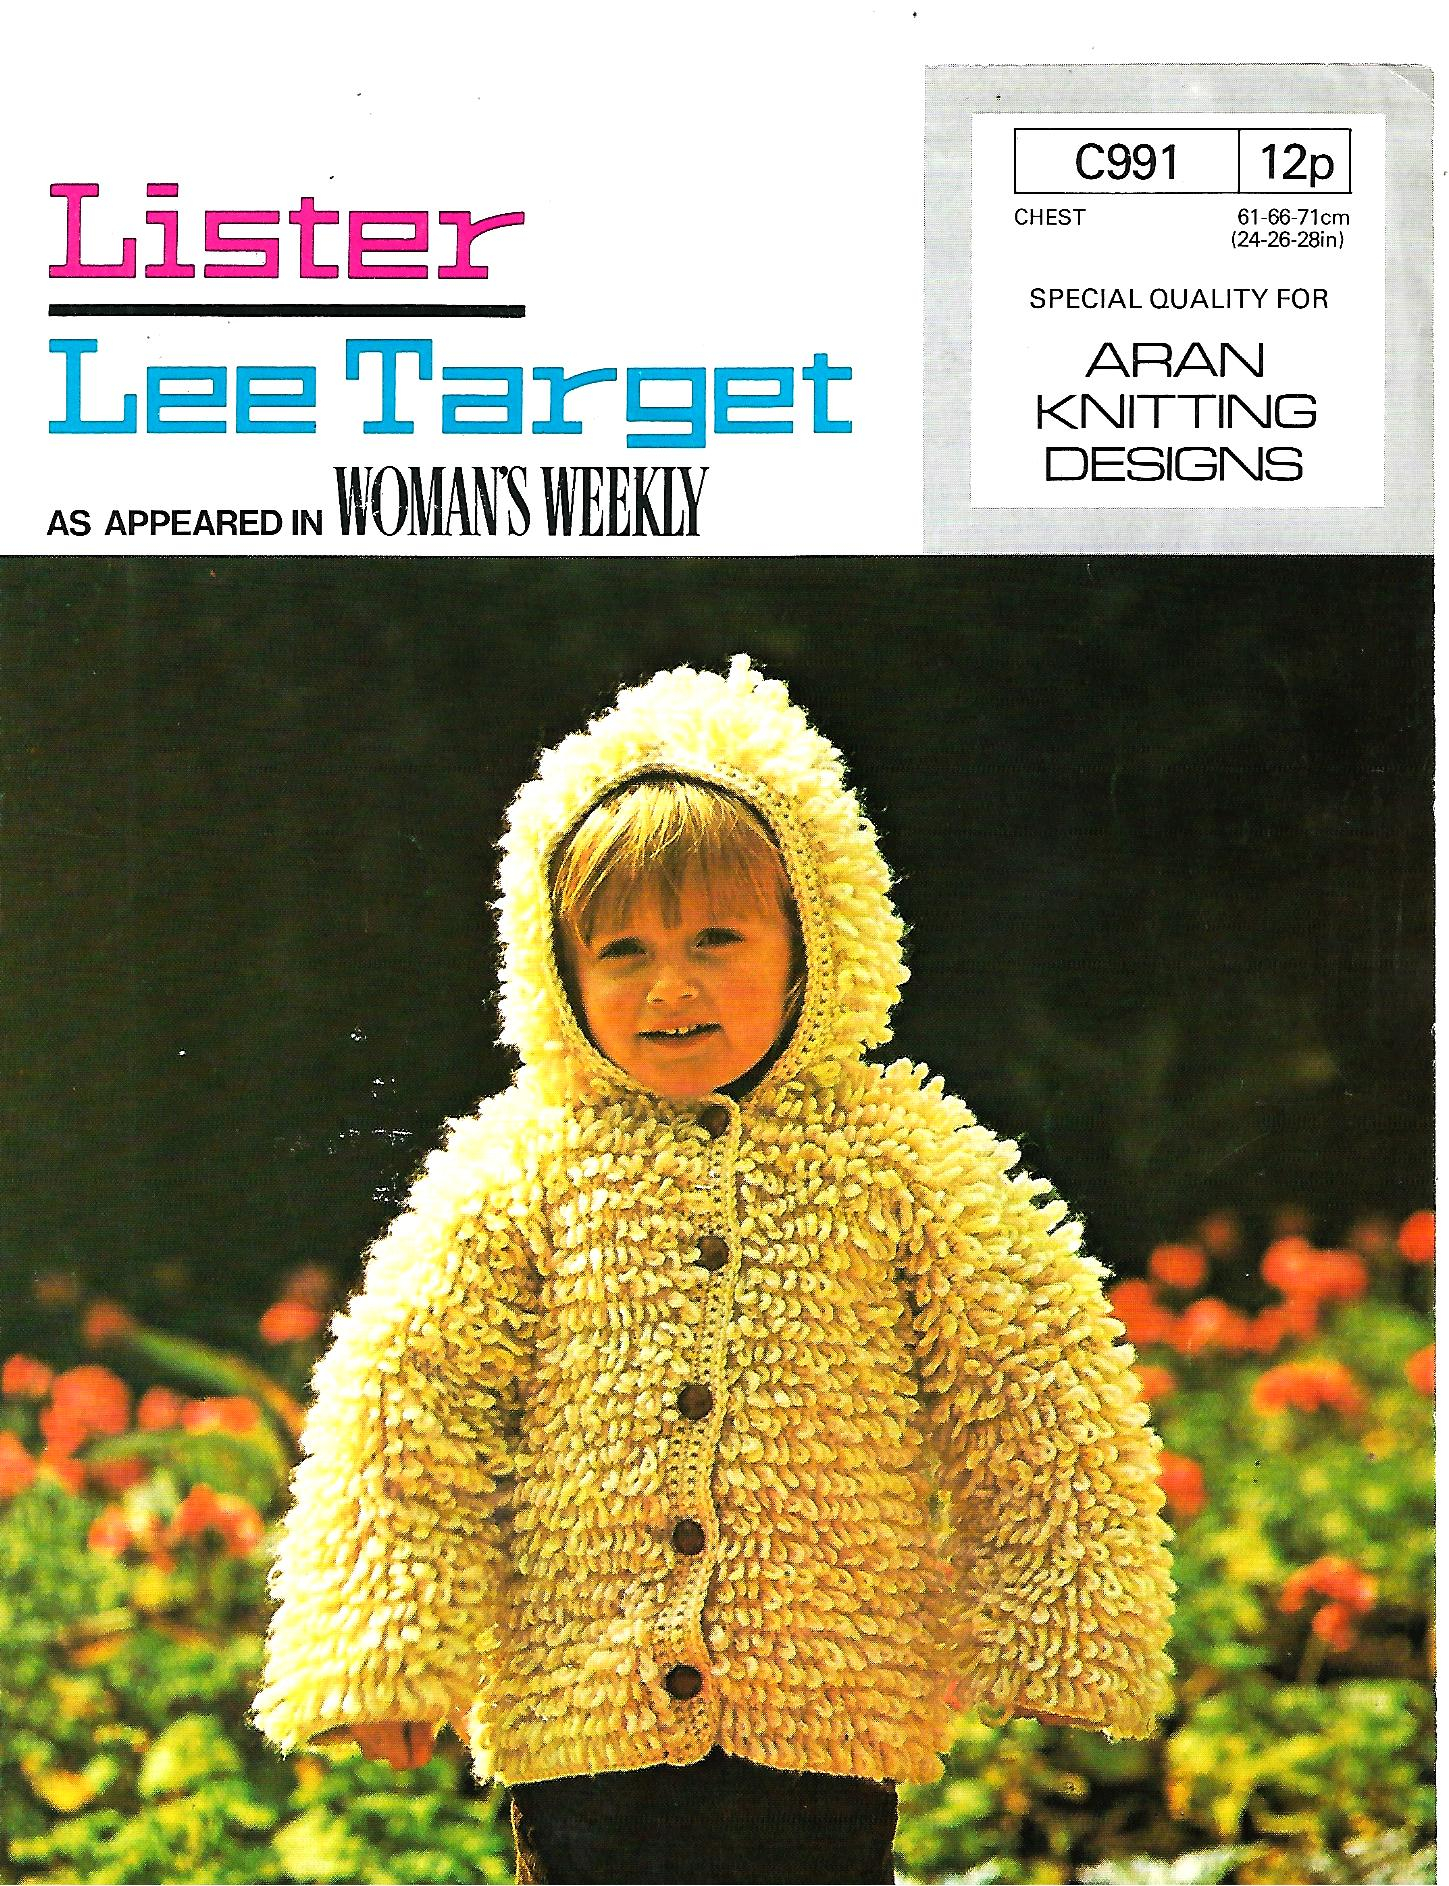 Woman Weekly Knitting Patterns Lister Lee Target C991 Knitting Pattern